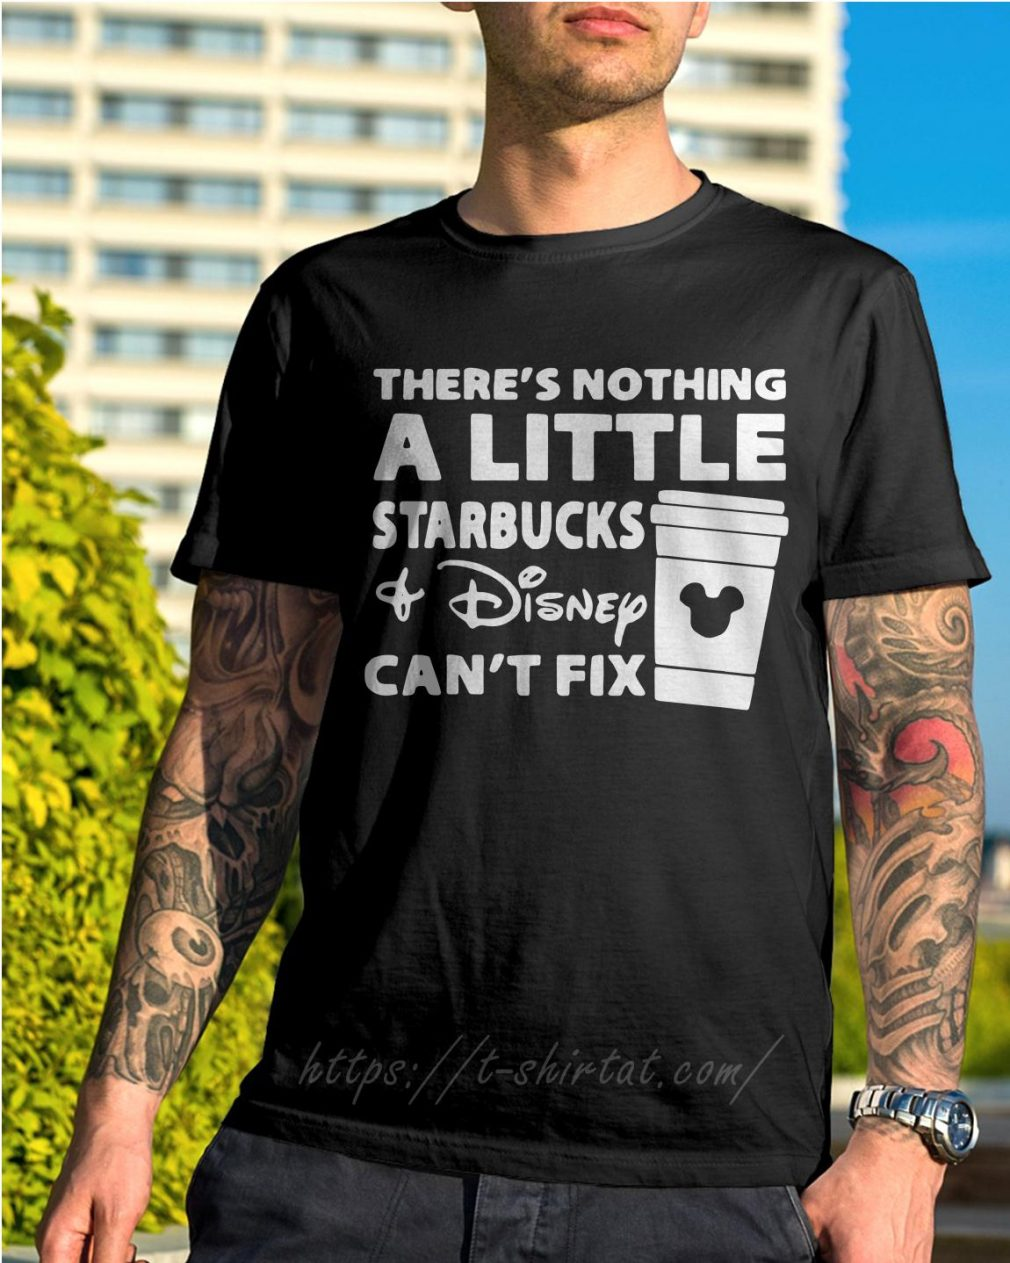 There's nothing a little Starbucks and Disney can't fix shirt